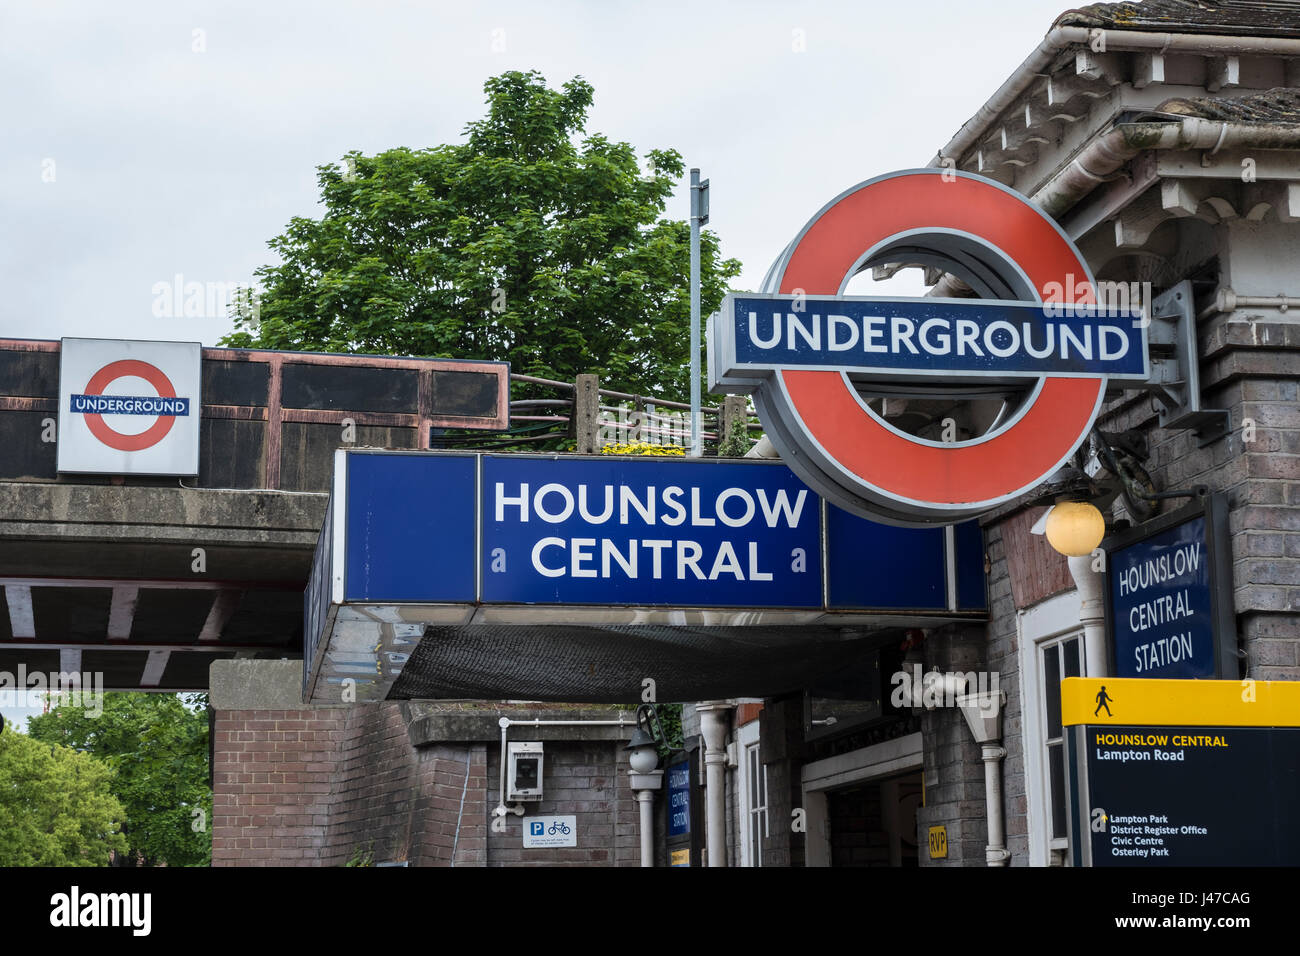 Hounslow Central station - Stock Image